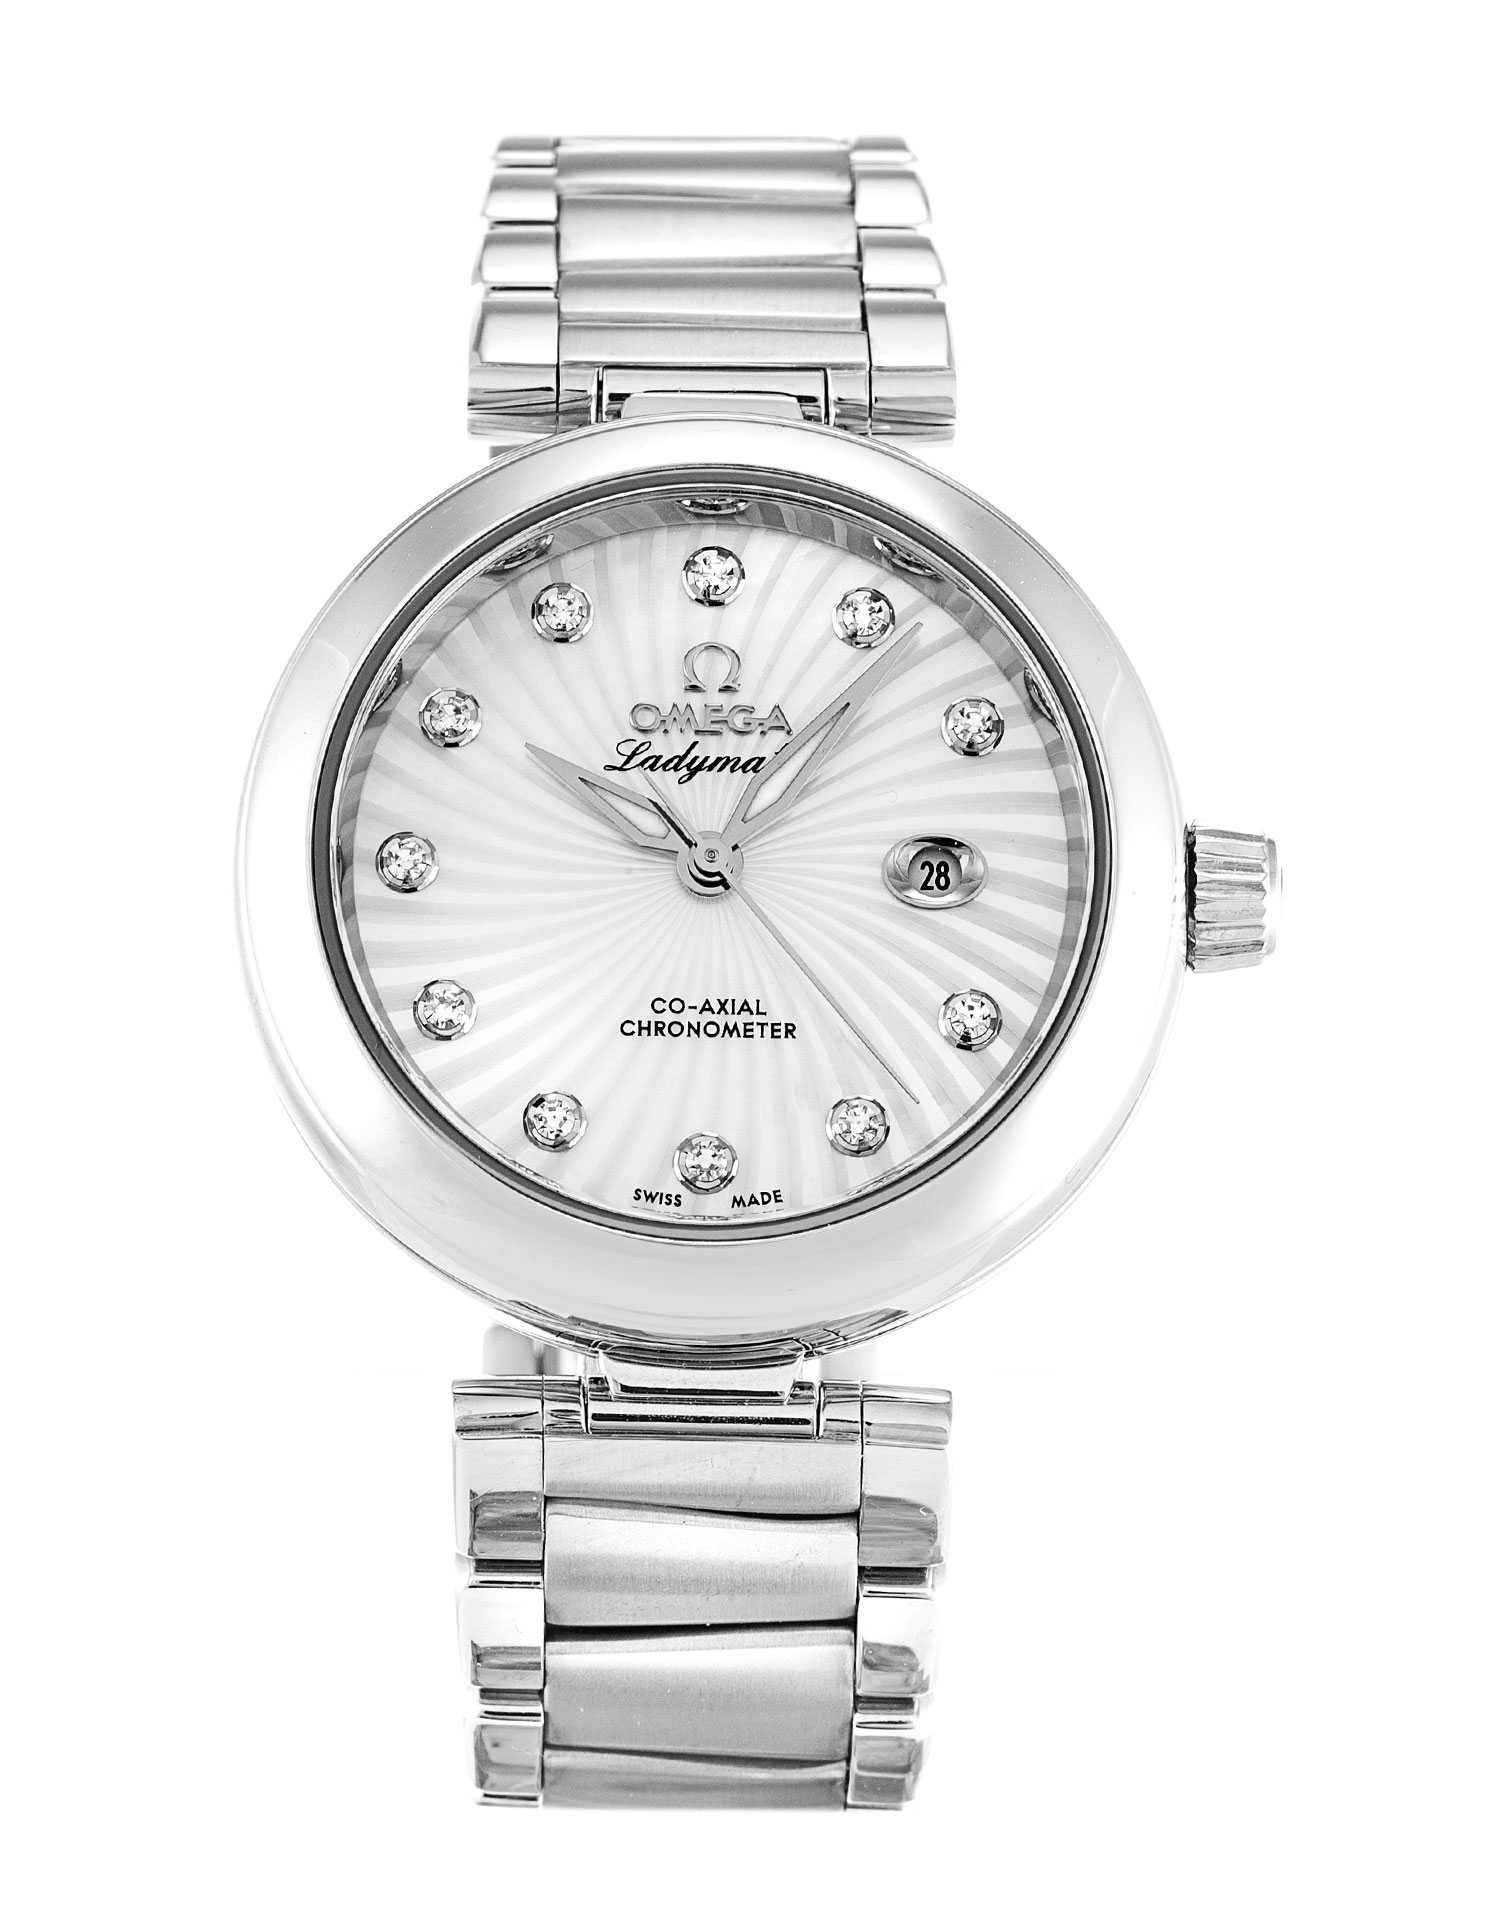 Omega De Ville Ladymatic 425.30.34.20.55.001 Ladies 34 Mm Steel Case Automatic Co-axial Movement – iapac.to